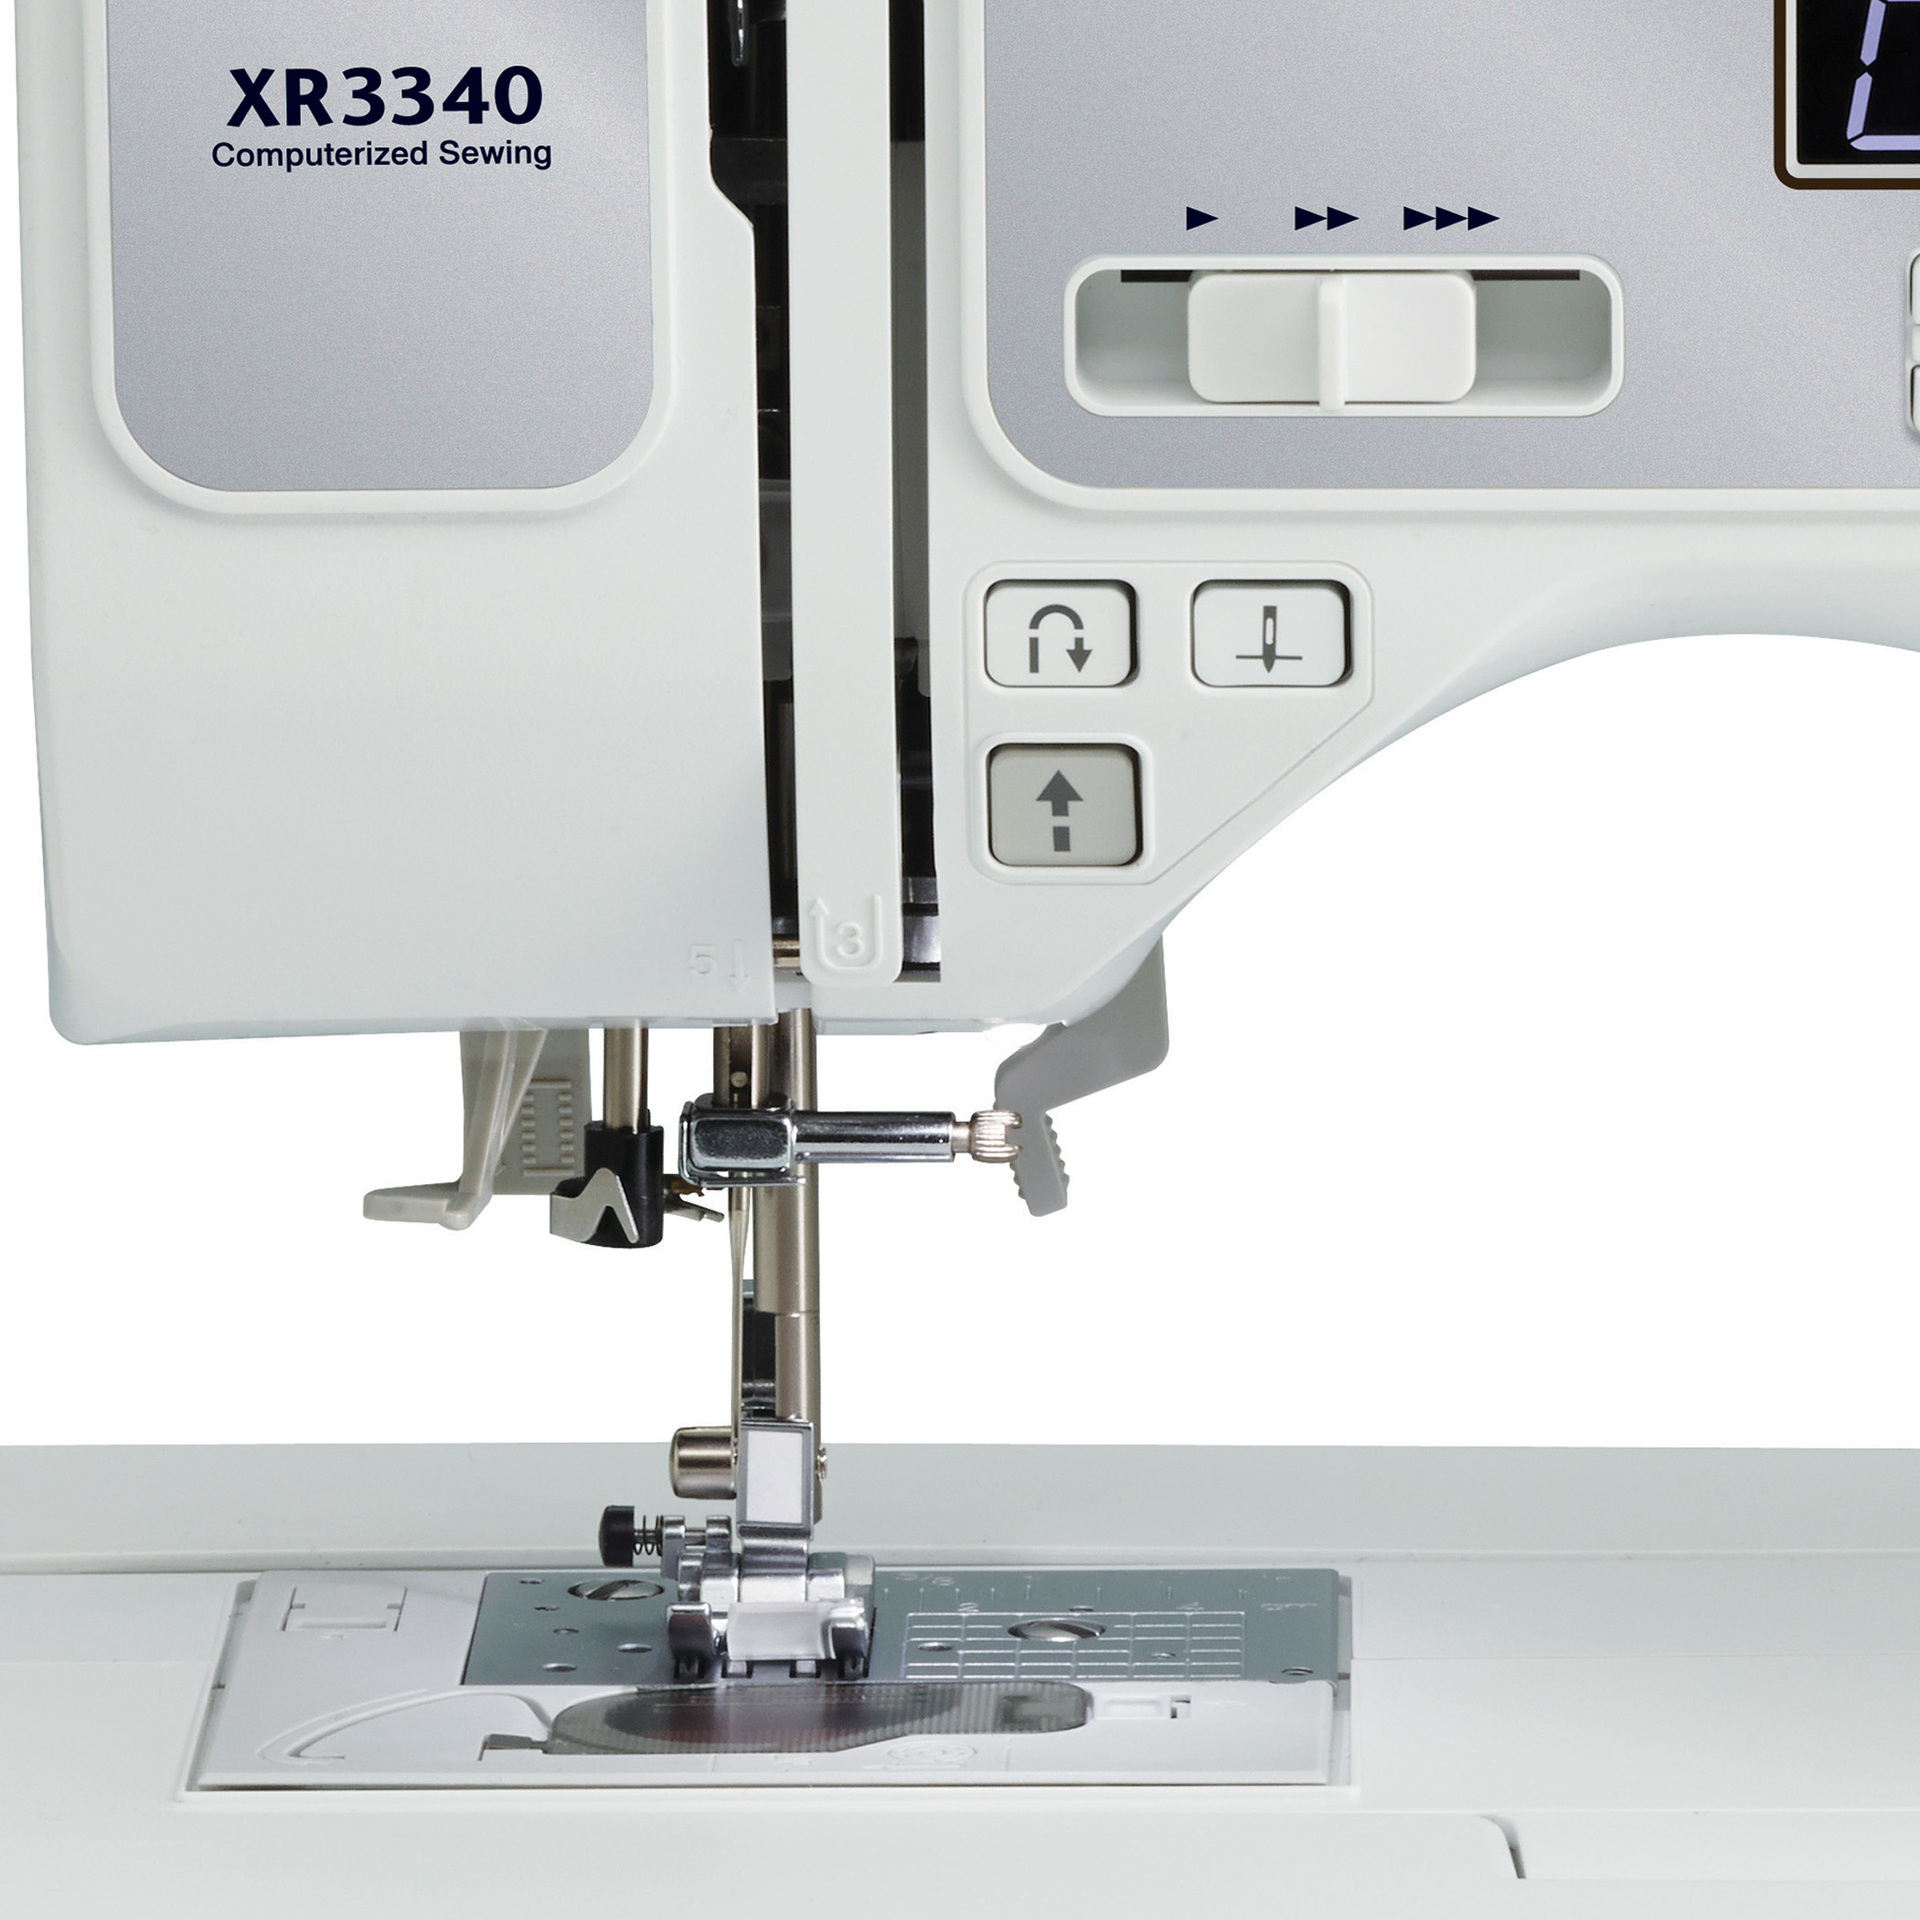 Brother Xr3340 Computerized Sewing And Quilting Machine Thread A Diagram Labeled Variable Speed Controls Start Stop Button Get Extra Control When